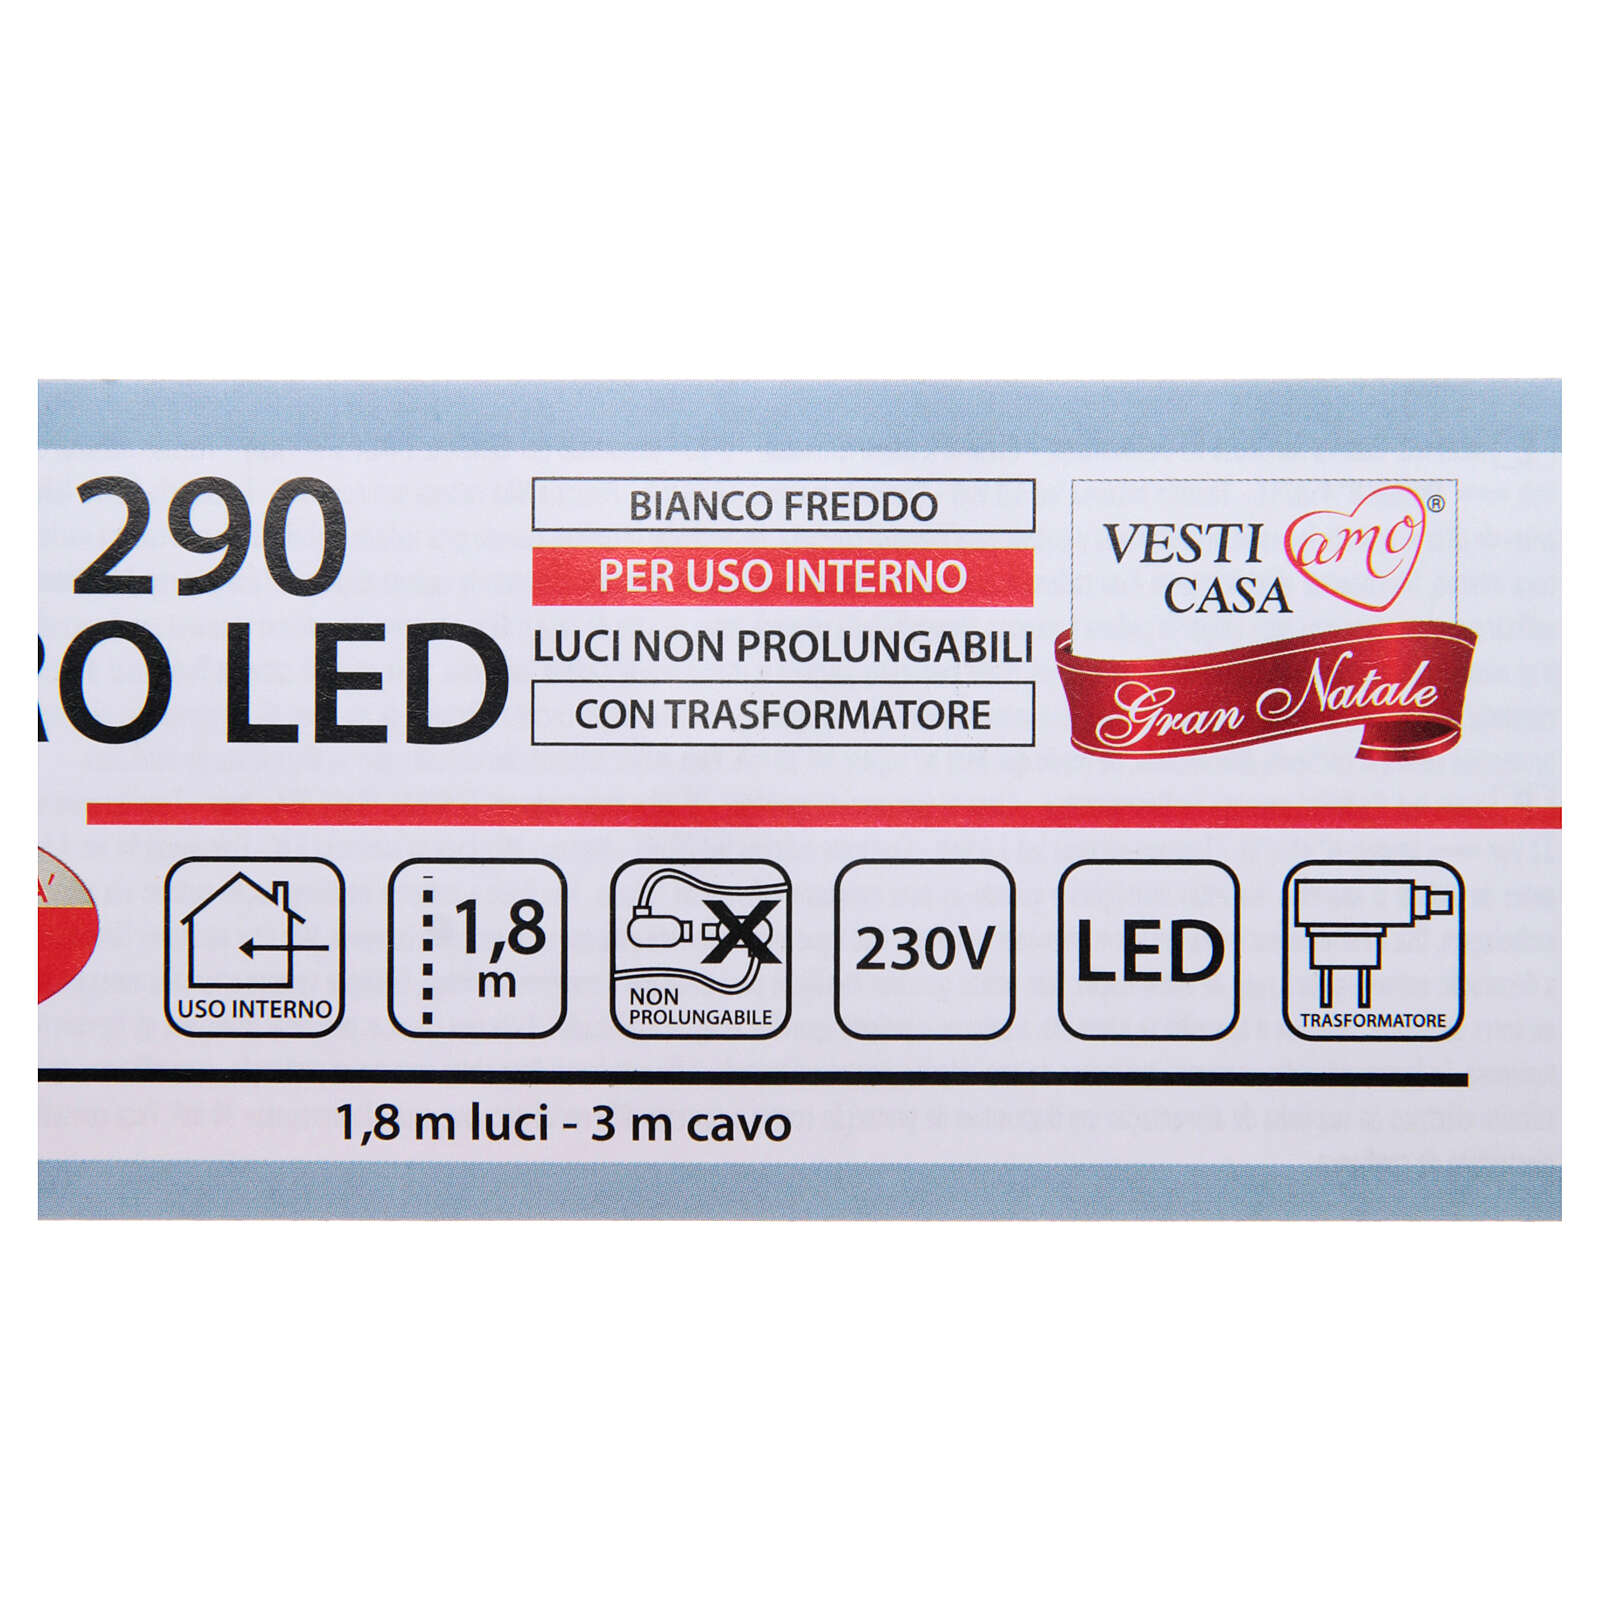 Guirlande lumineuse branches 290 microleds blanc froid INTÉRIEUR 3